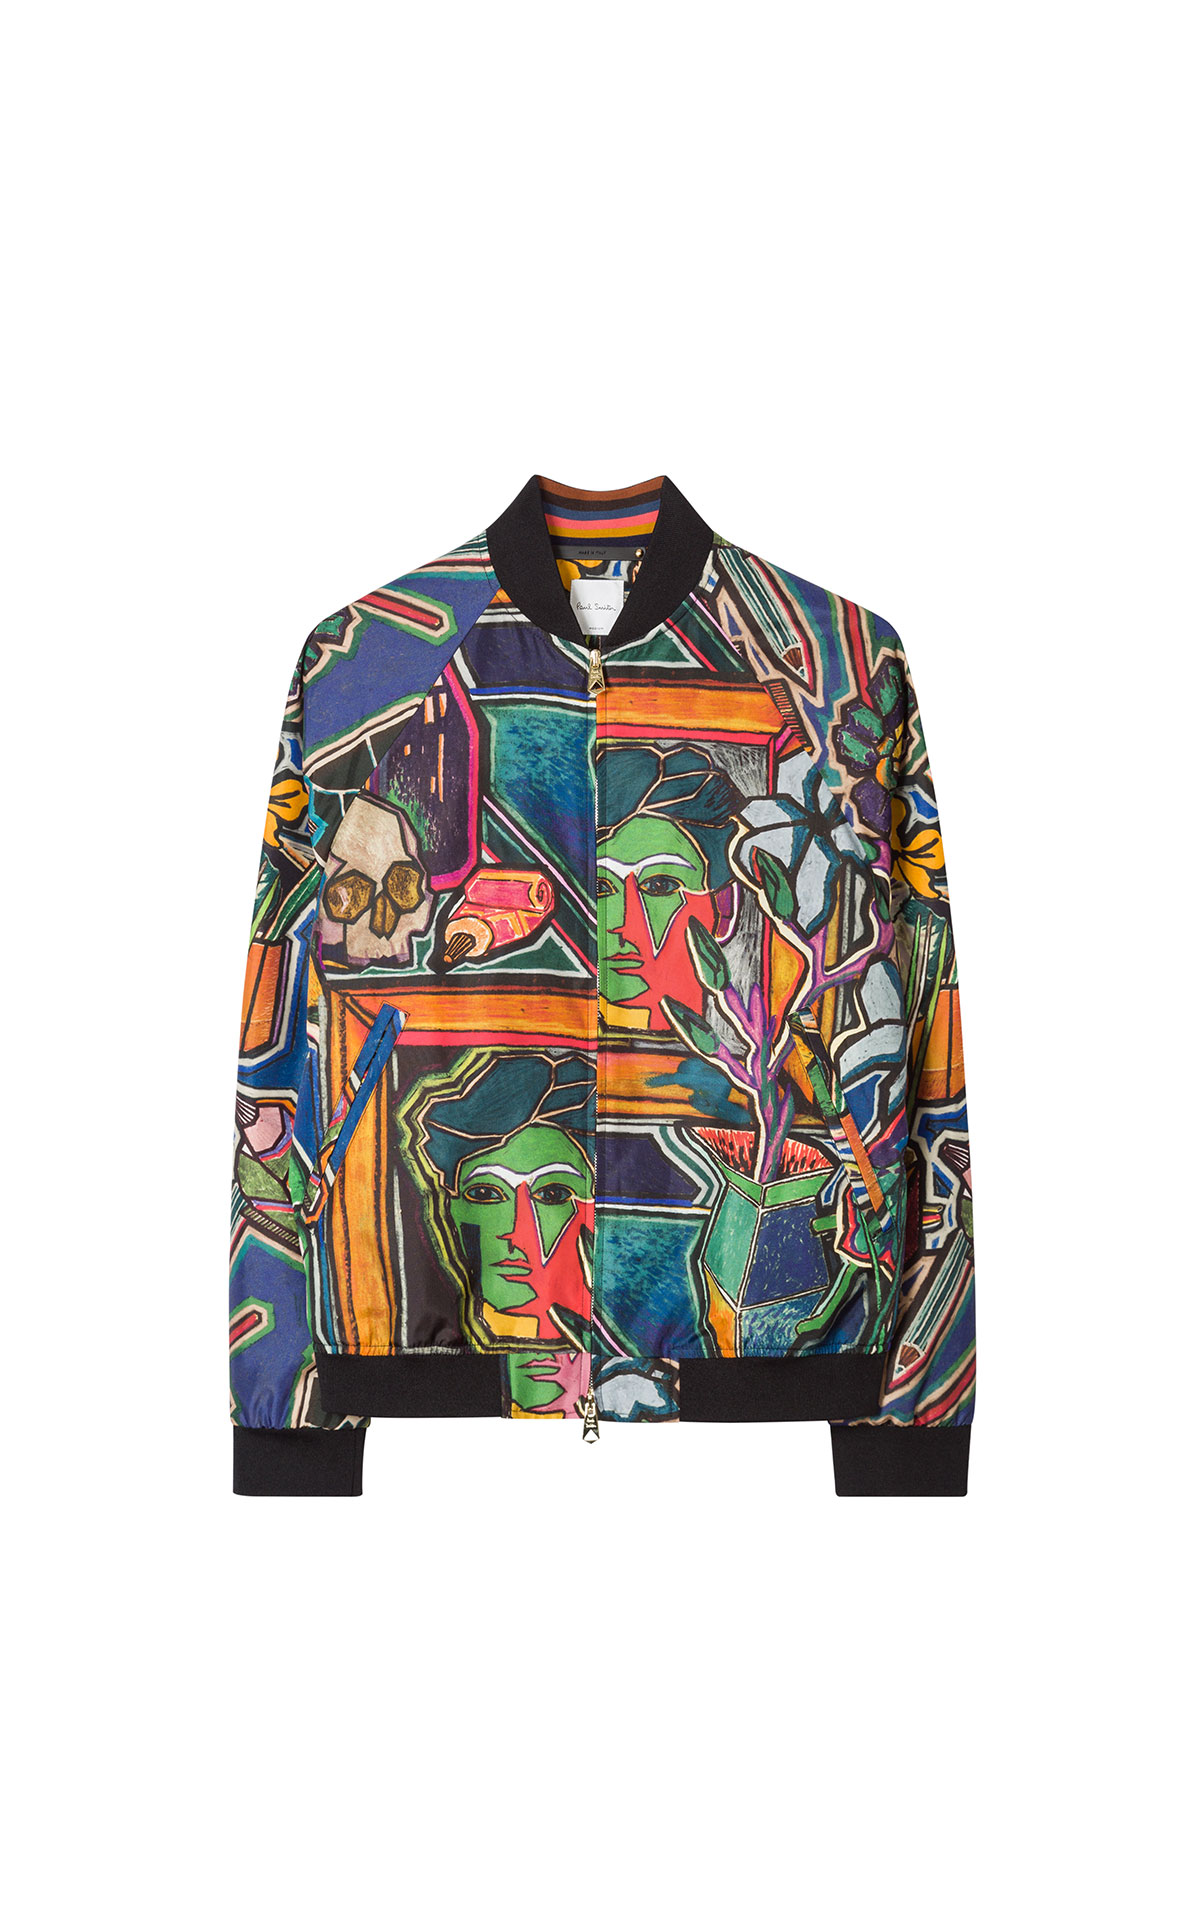 Paul Smith Men's Artist Studio Jacket at The Bicester Village Shopping Collection